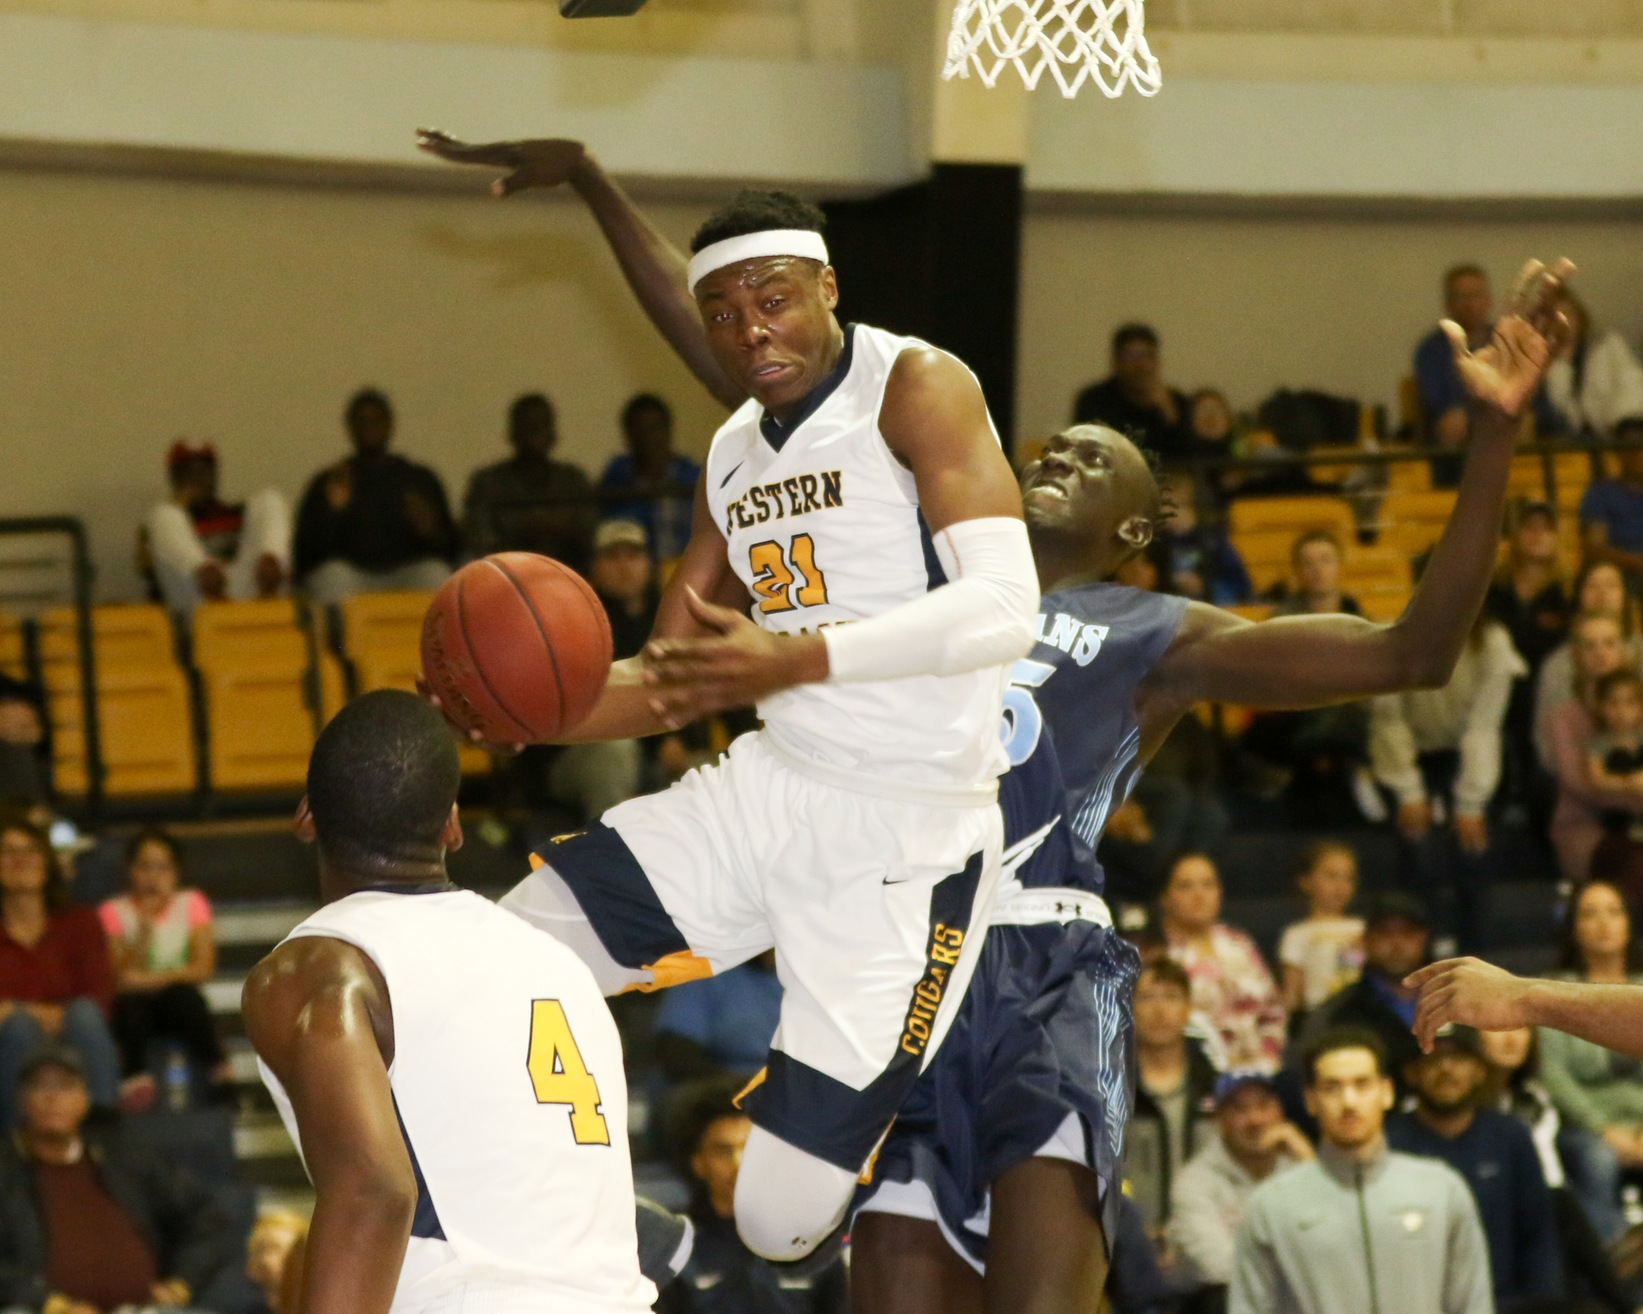 WNCC comes back to top Colby behind Green's 30 points